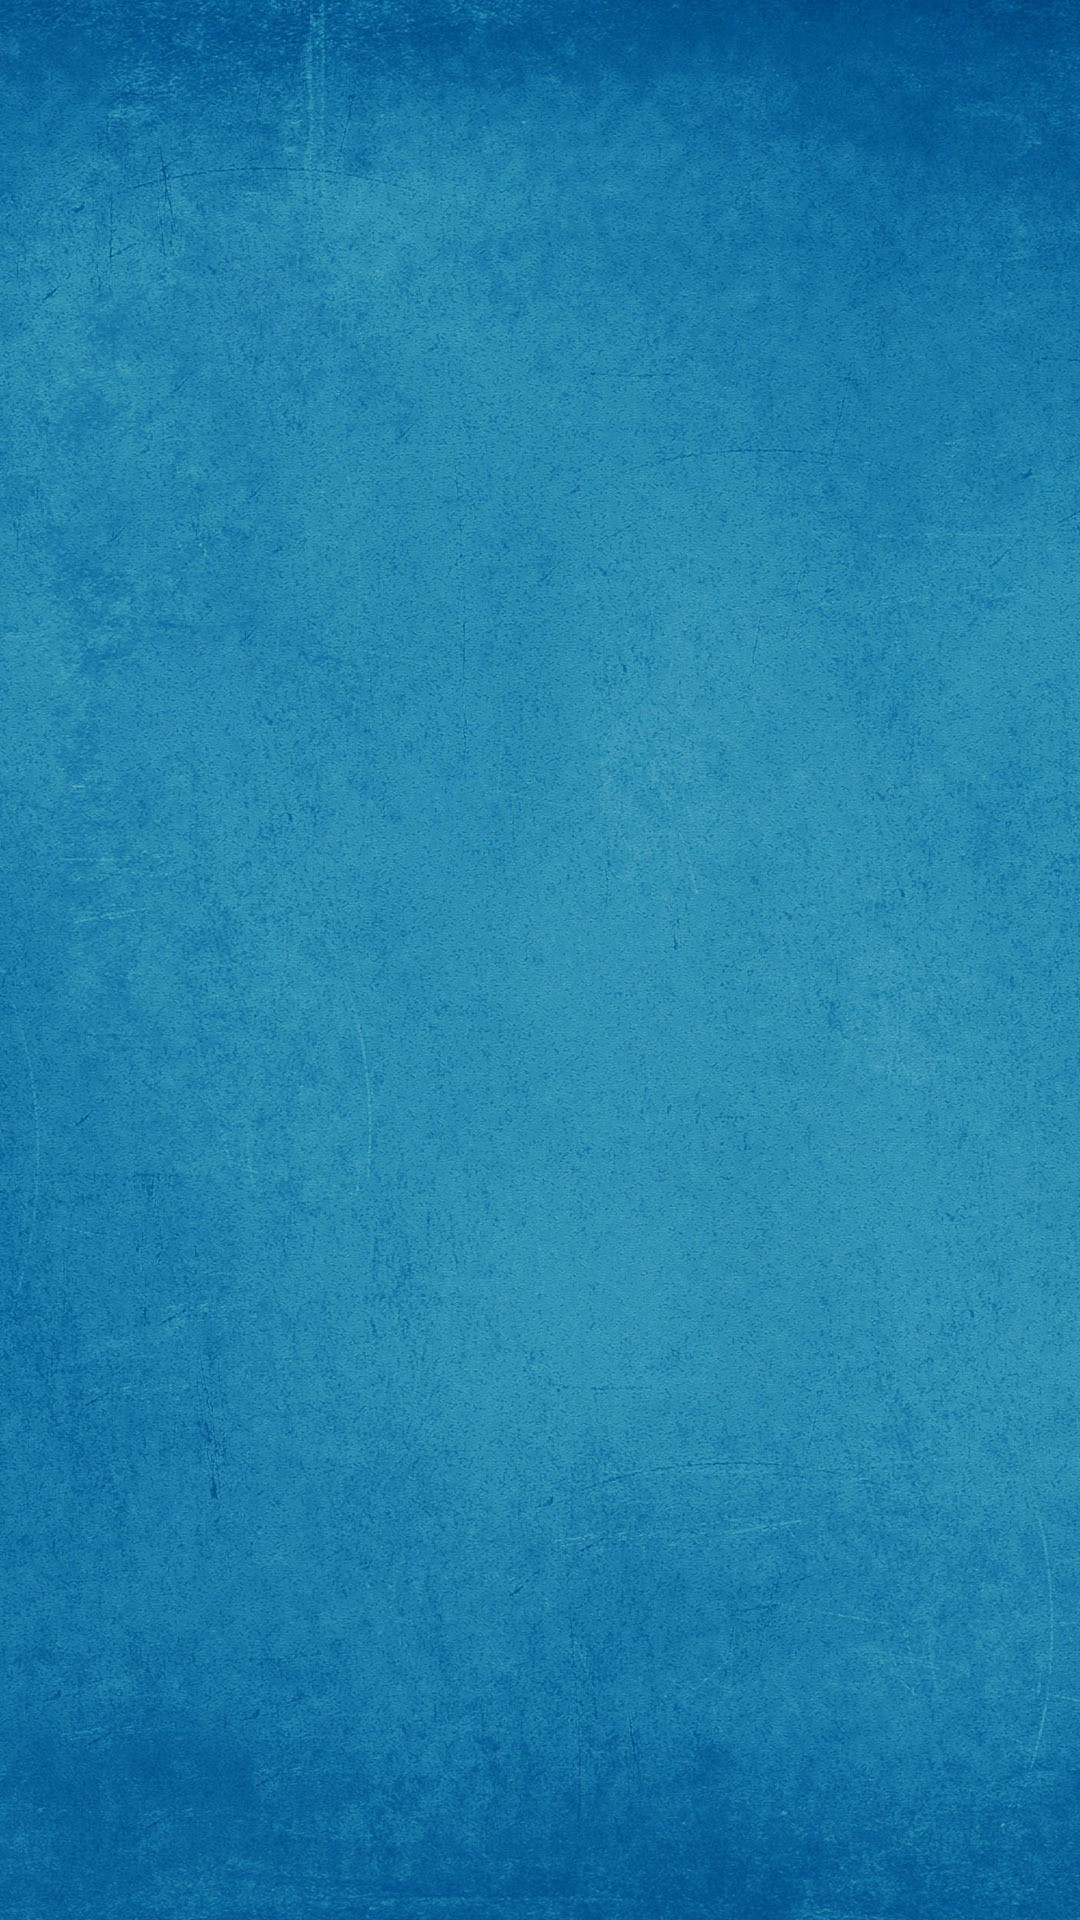 Blue texture Wallpaper